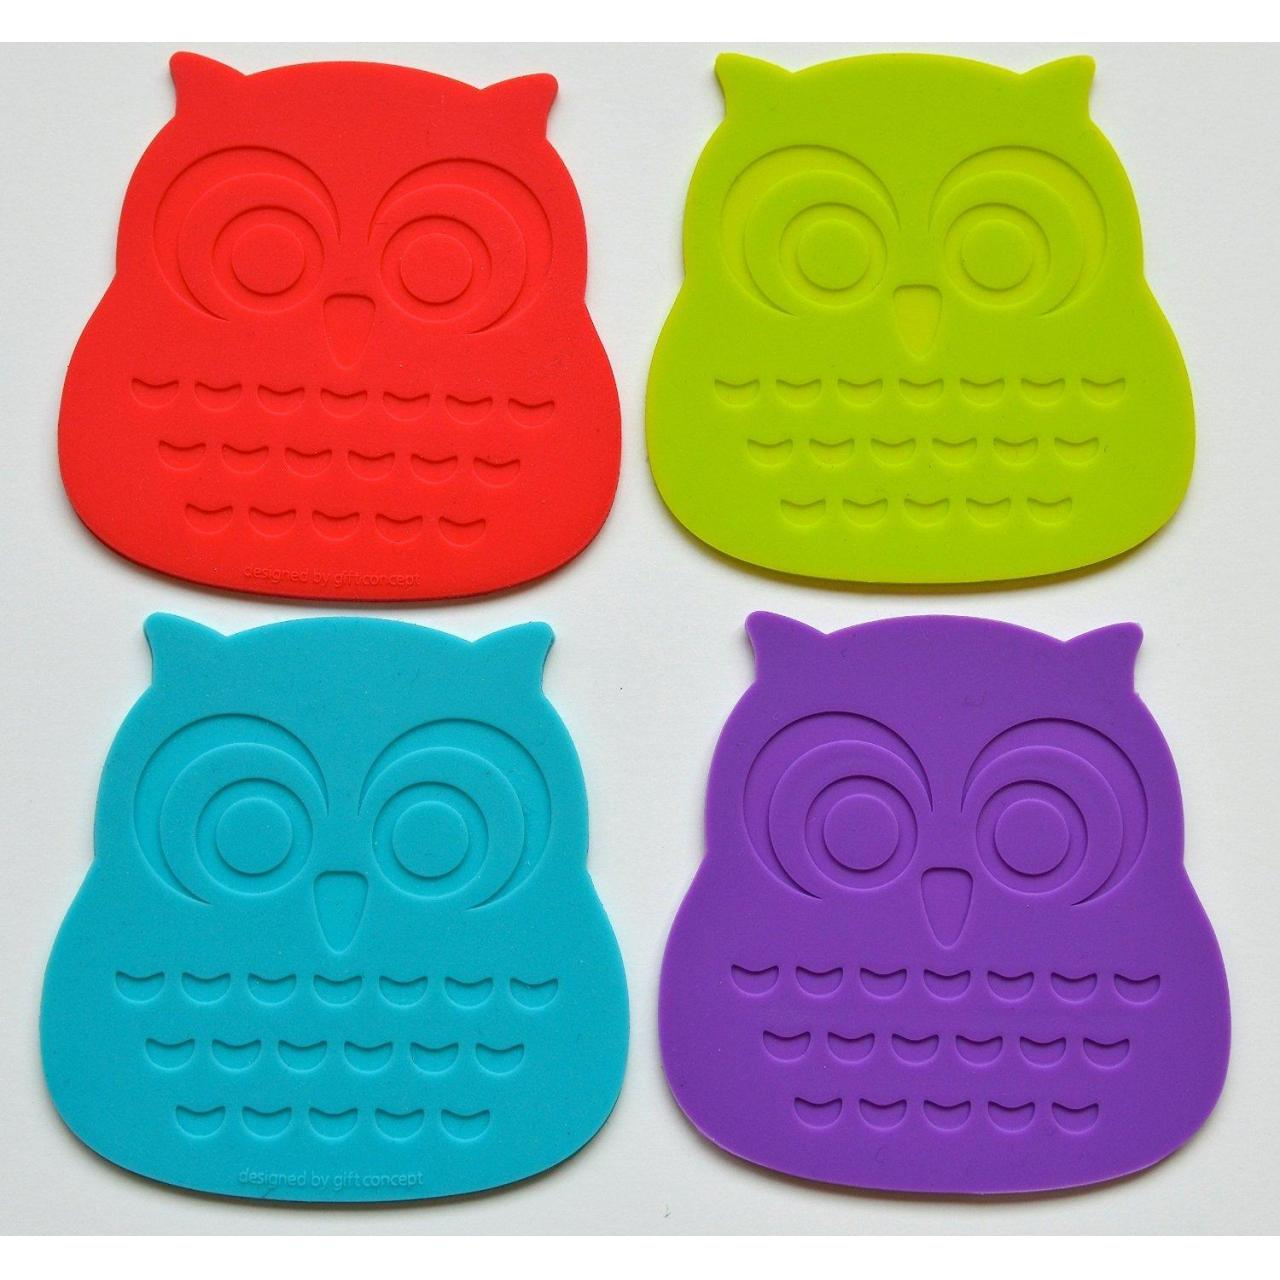 China Set of 4 Stylish and Cool Owl Coasters. Buy Our Silicone Coasters That Protect Your Tabletop Surface wholesale